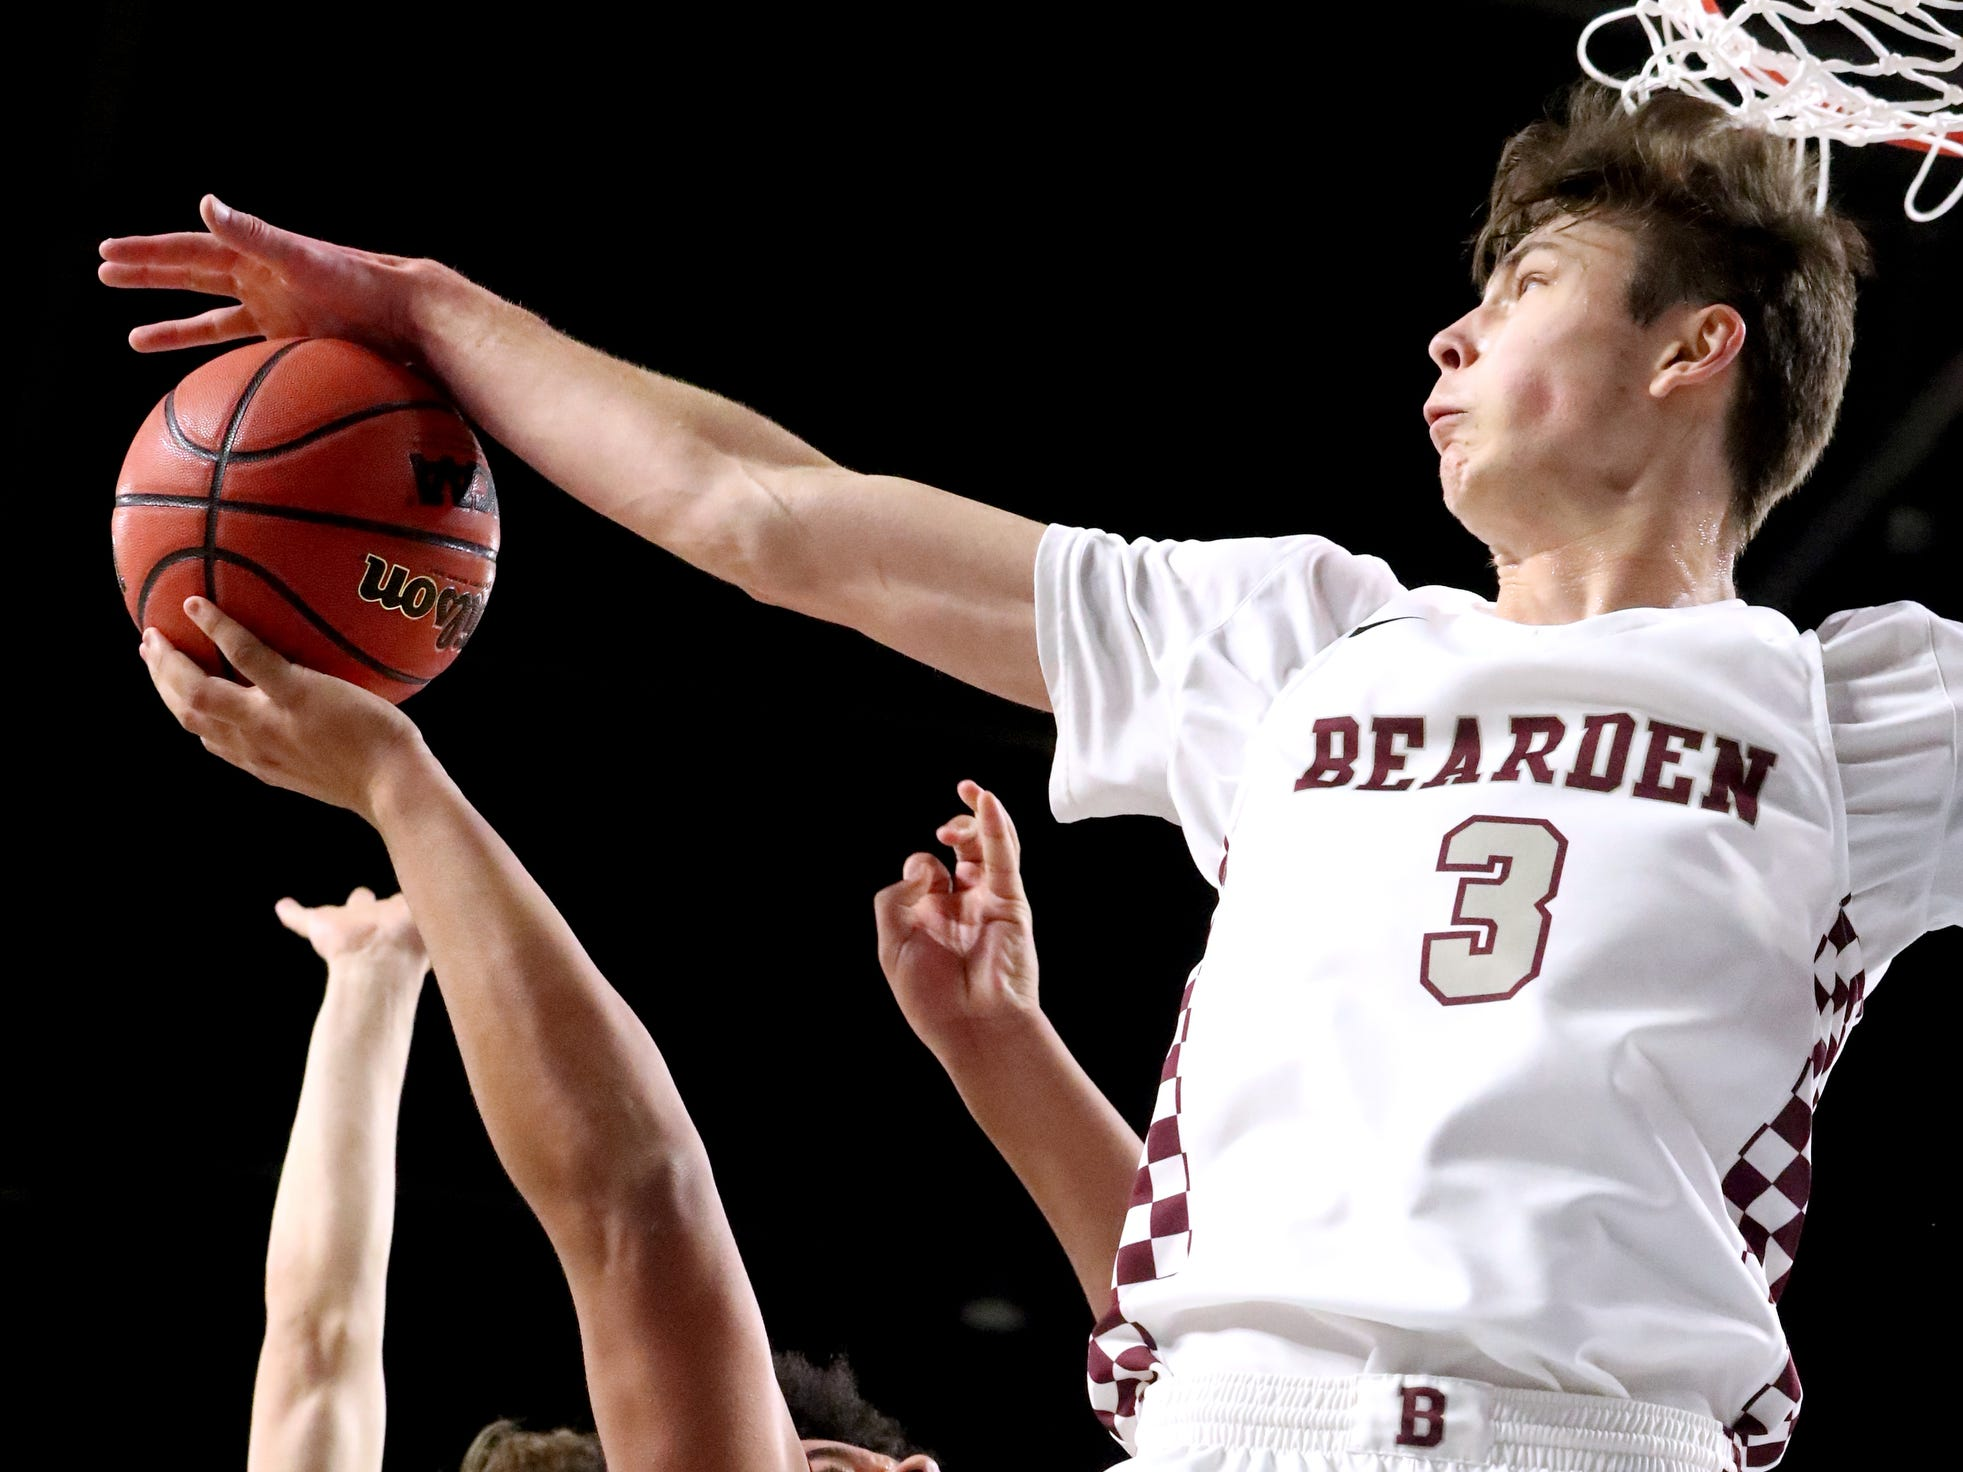 Franklin's Ahsharri Haynesworth (2) goes up for a shot as Bearden's Drew Pember (3) blocks it and Bearden's Kordell Kah (24) guards him from behind during the quarterfinal round of the TSSAA Class AAA Boys State Tournament, on Wednesday, March 13, 2019, at Murphy Center in Murfreesboro, Tenn.